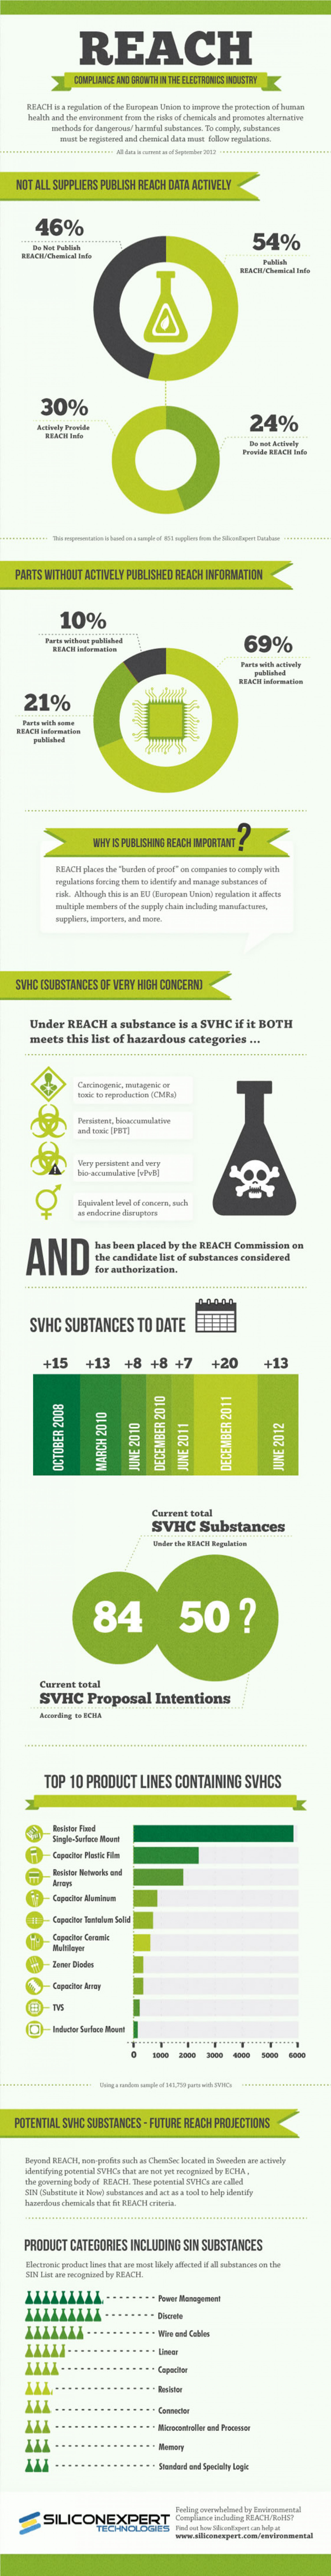 REACH: Compliance and Growth in the Electronics Industry  Infographic